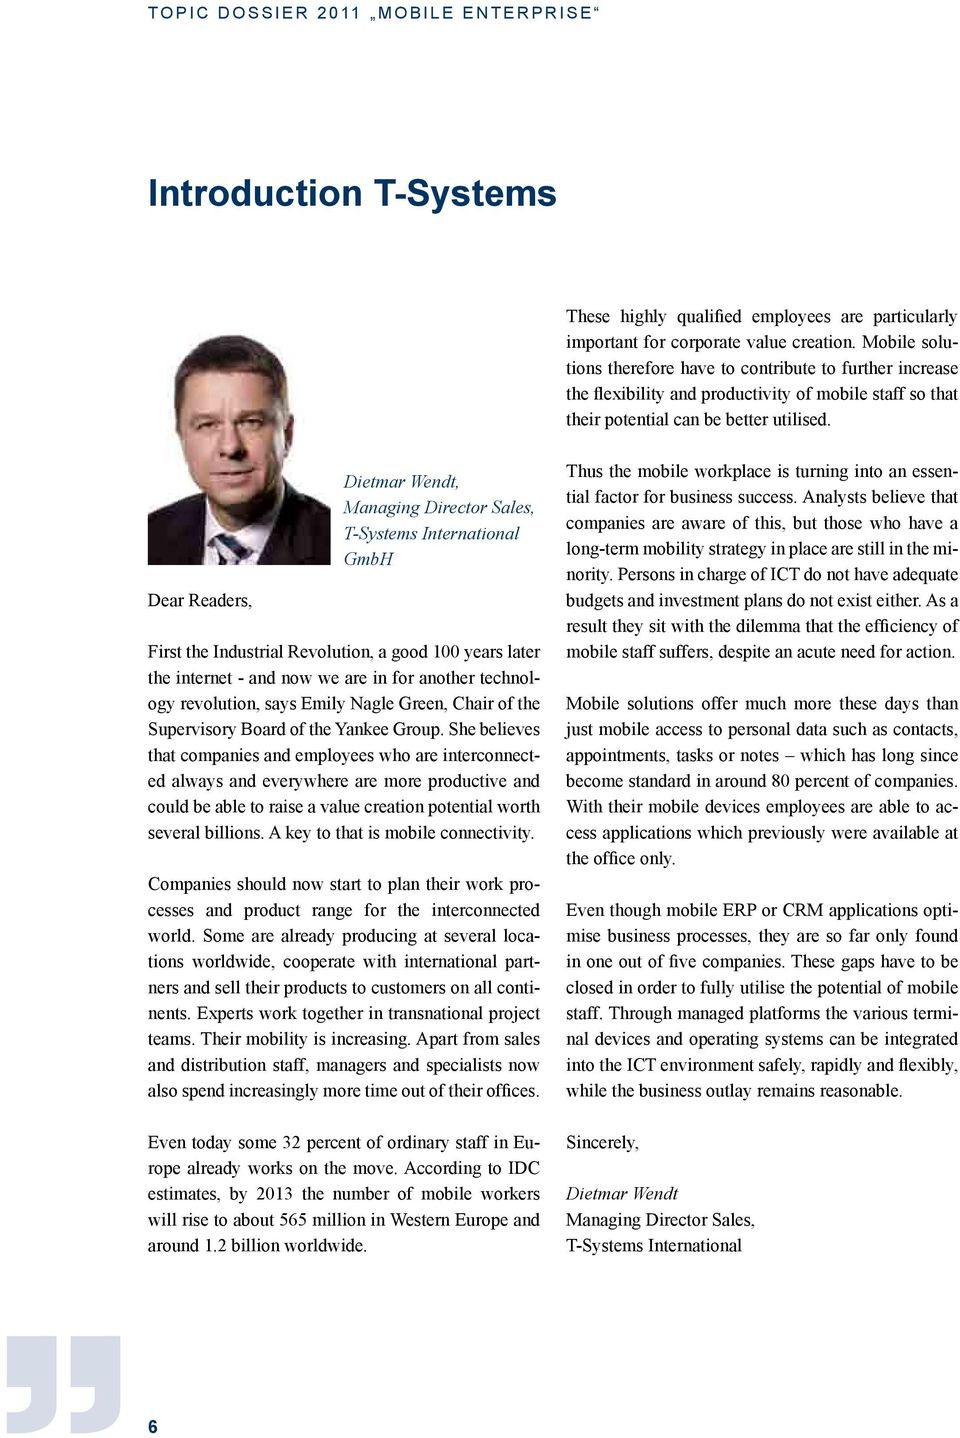 Dear Readers, Dietmar Wendt, Managing Director Sales, T-Systems International GmbH First the Industrial Revolution, a good 100 years later the internet - and now we are in for another technology